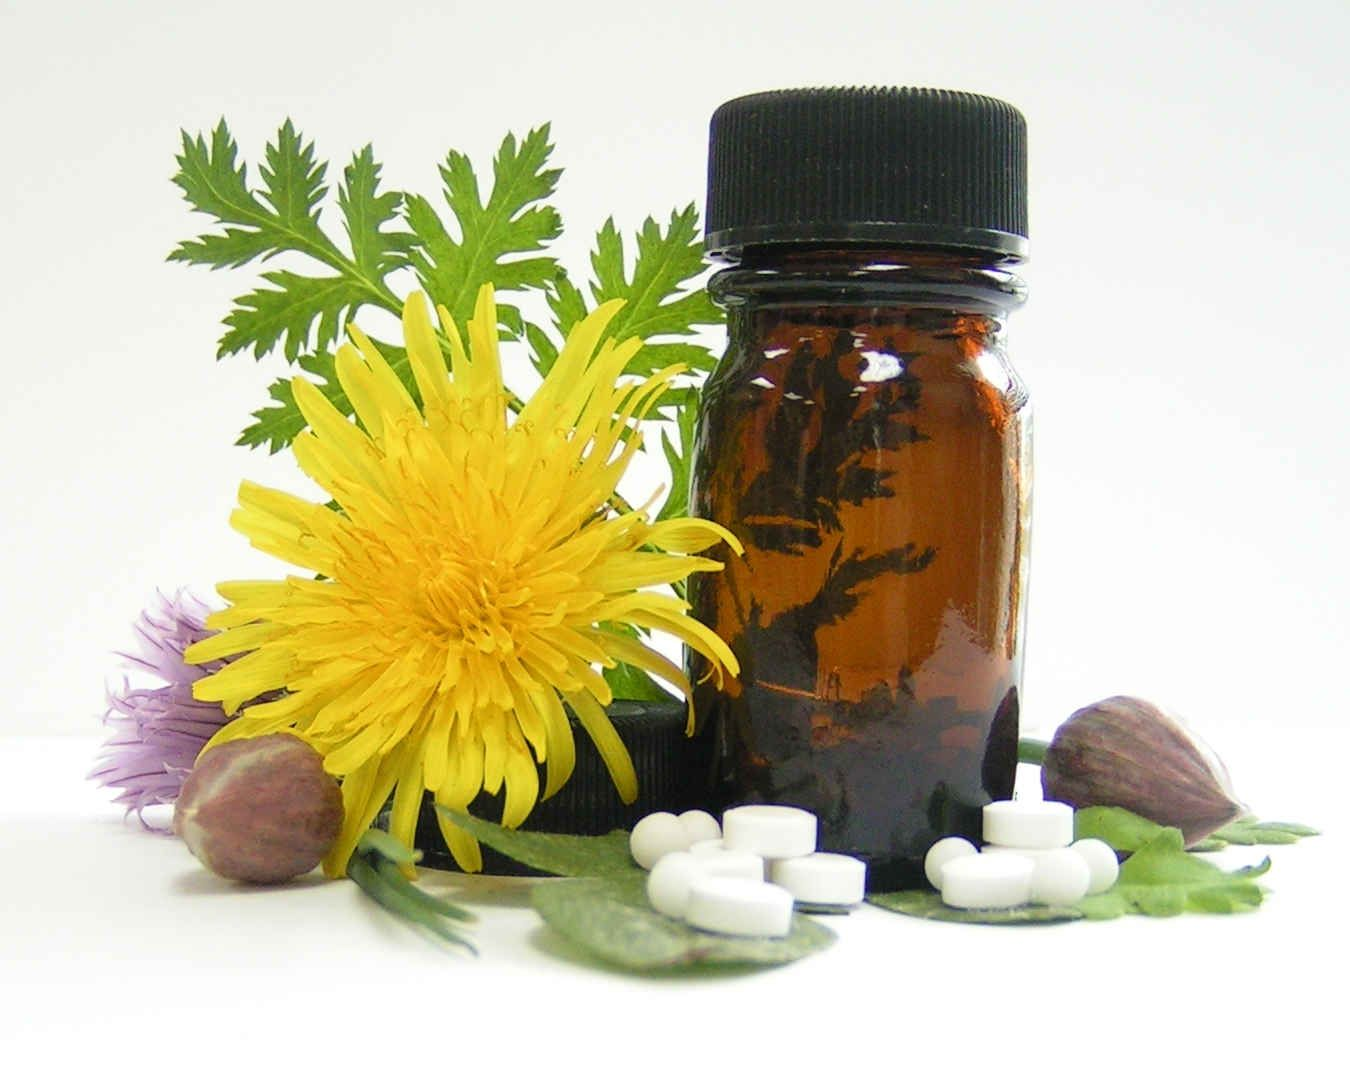 #Cancer_Treatment_in_Homeopathy Best Cancer Treatment in Homeopathy in ExcelPharma http://www.excelpharma.in/product/e-slim-drops/